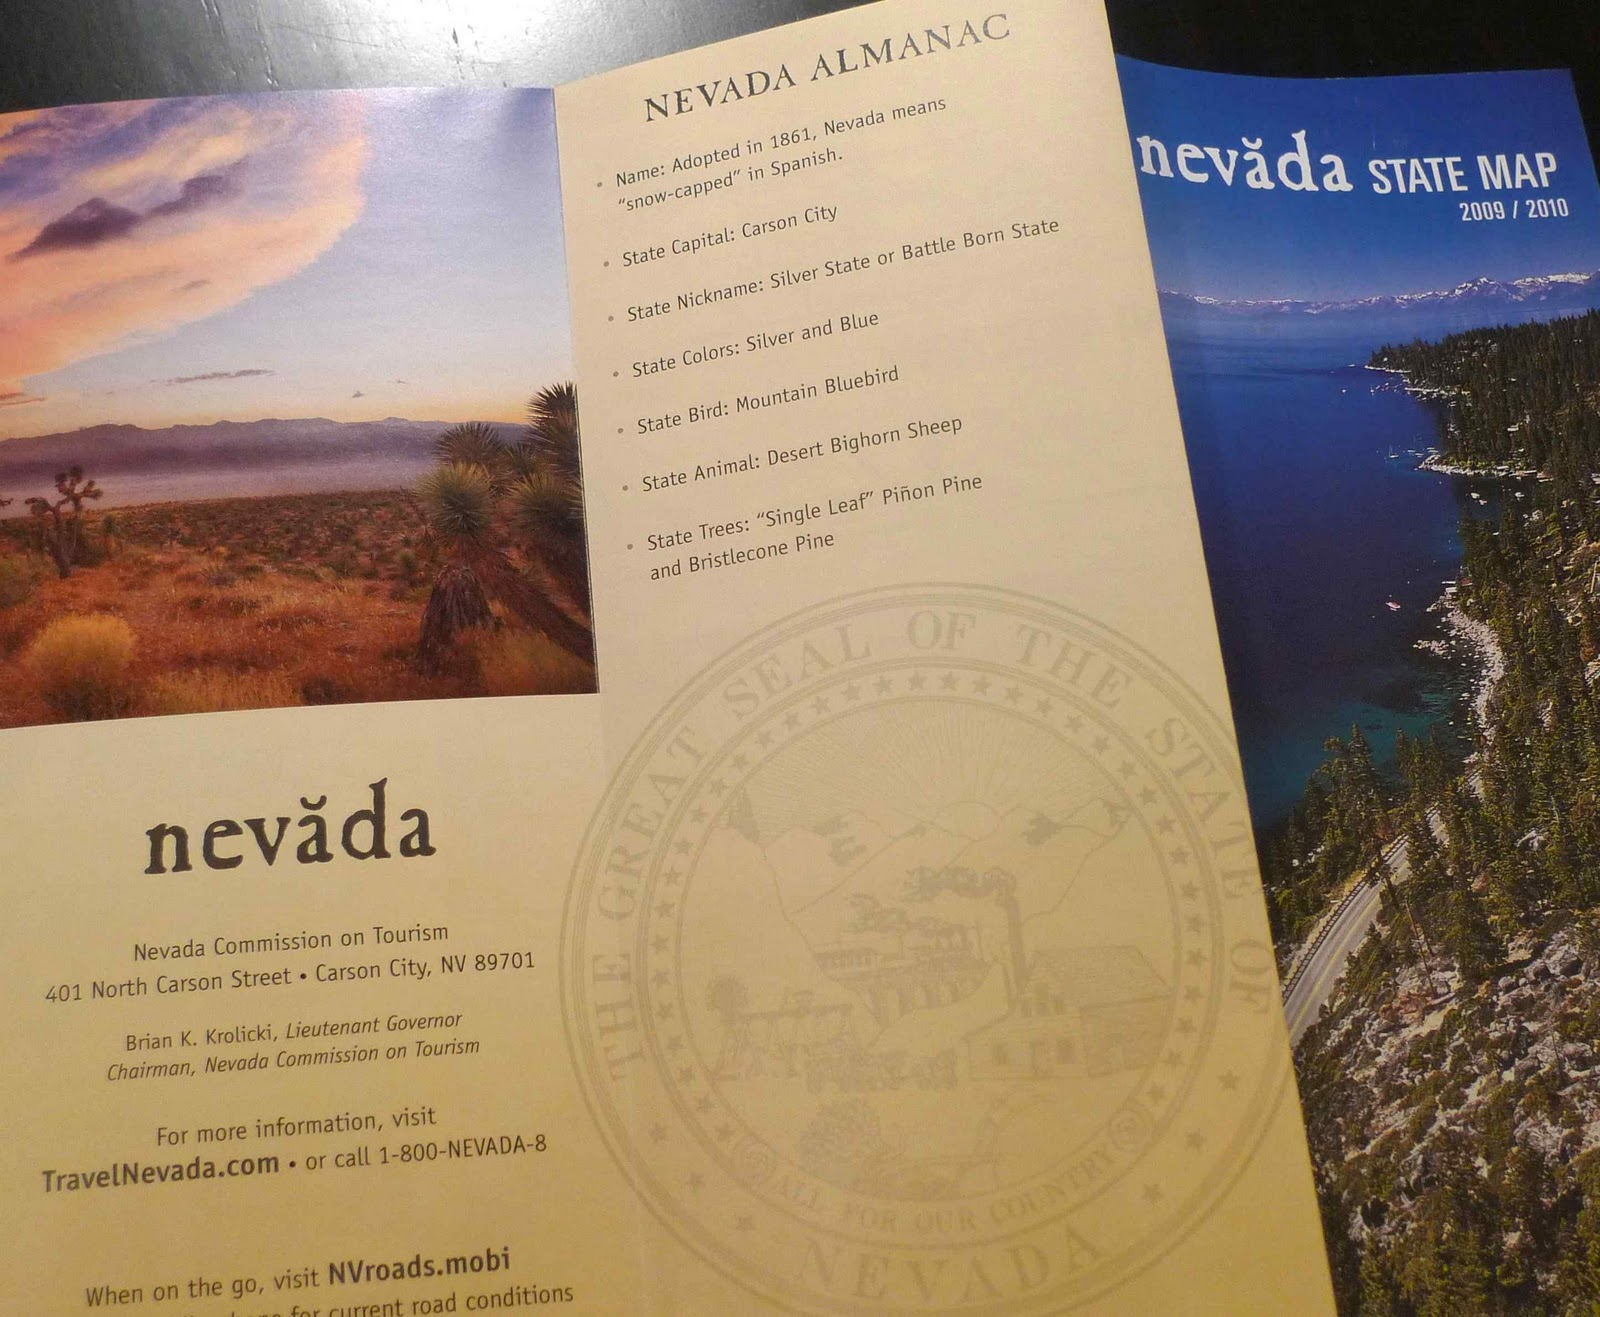 Lost In Translation Nevada QuotOfficialquot Or QuotSpanish